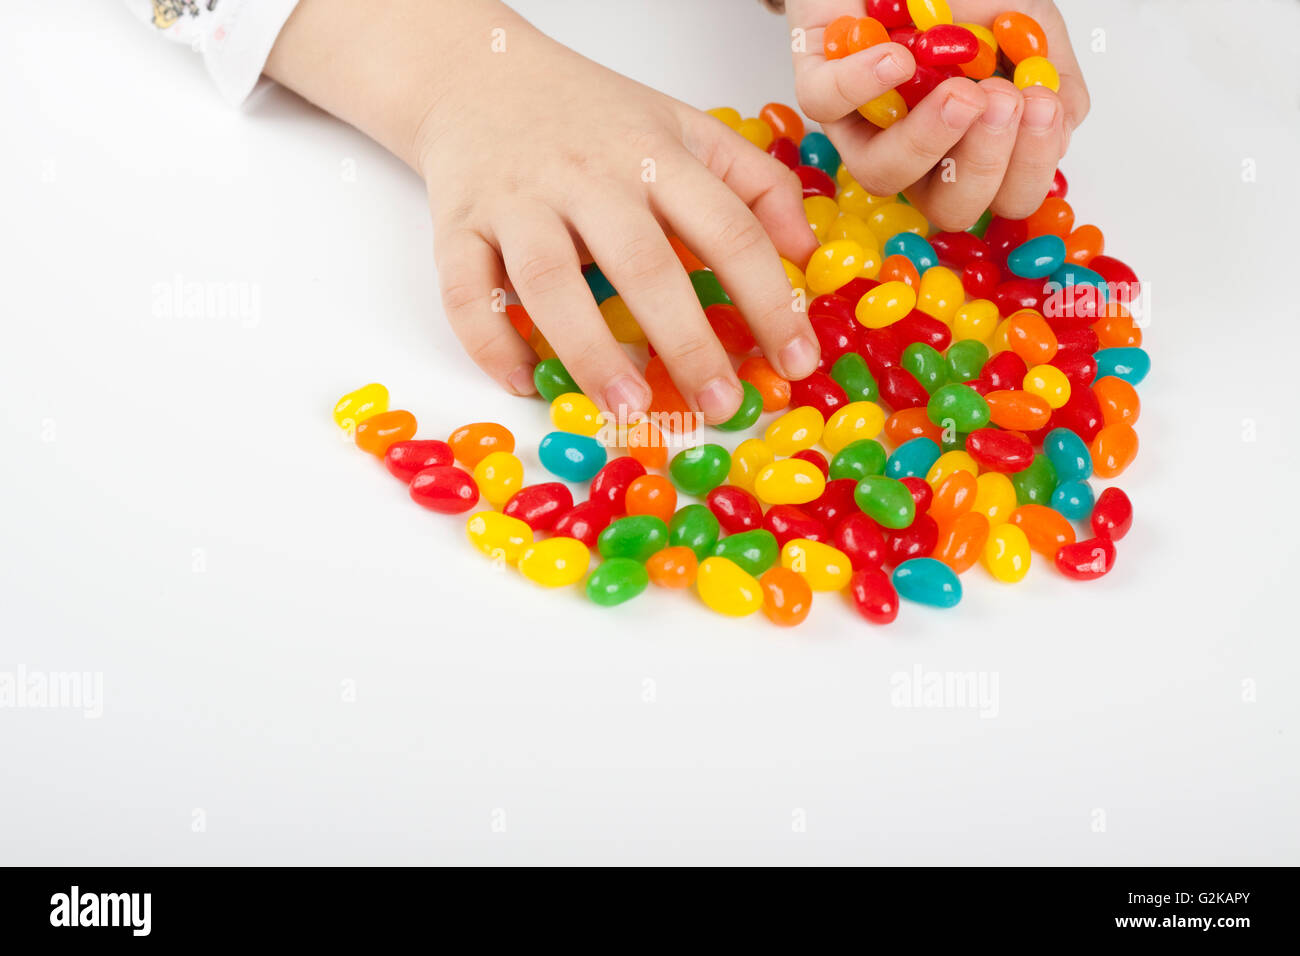 child grabing and holding lot's of colored candy Stock Photo